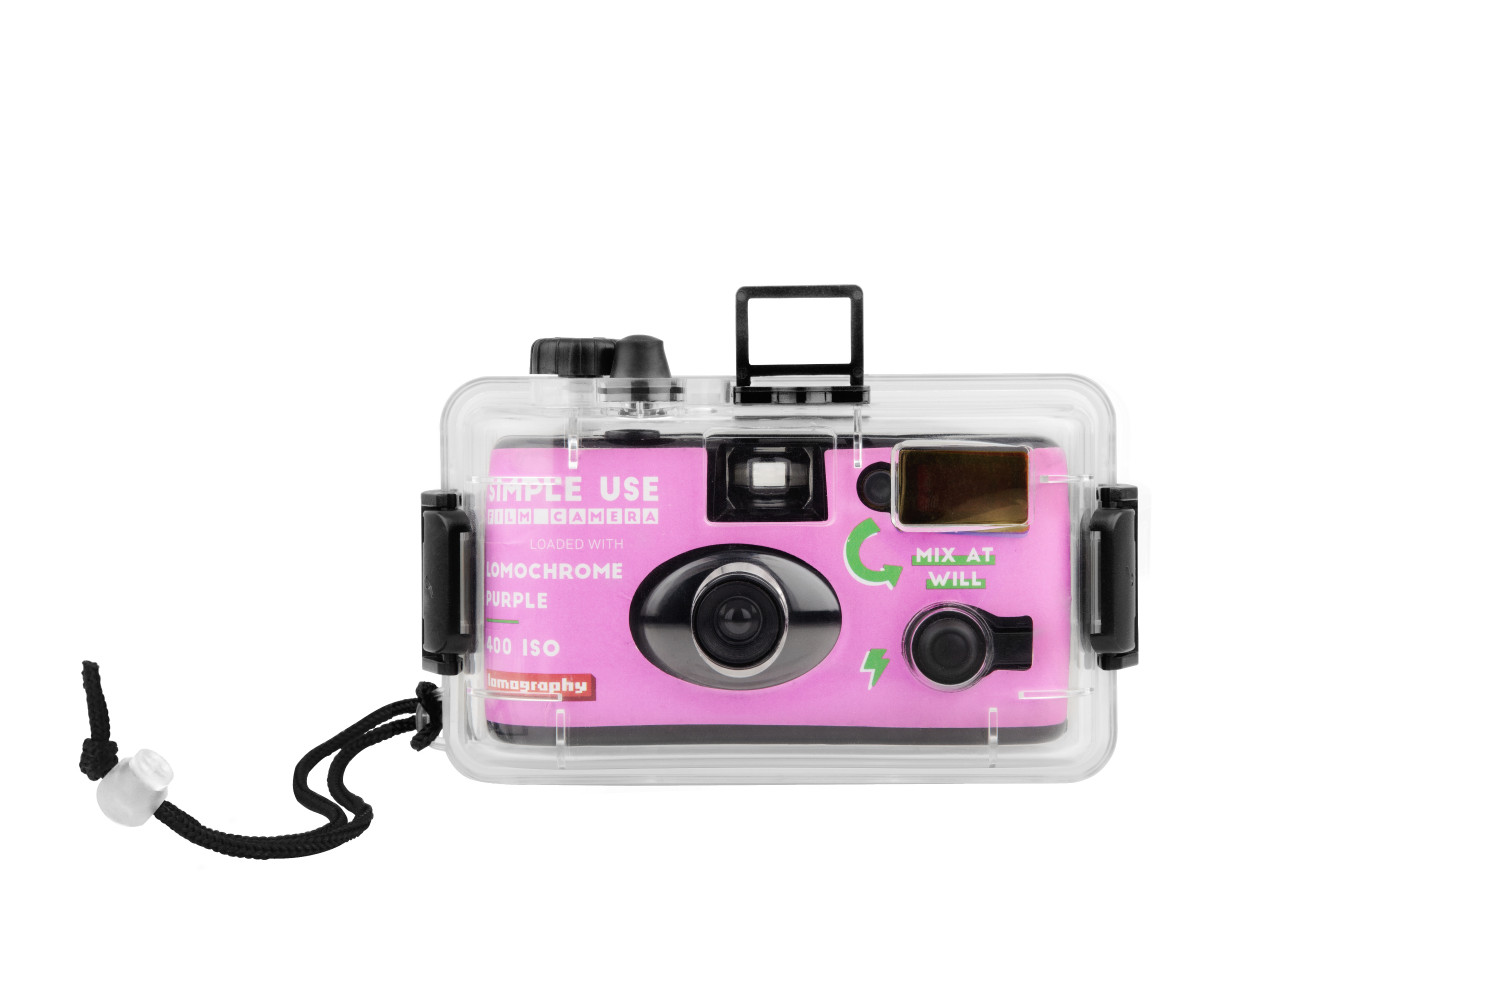 Analogue Aqua - Simple Use Reloadable Camera & Underwater Case LomoChrome Purple